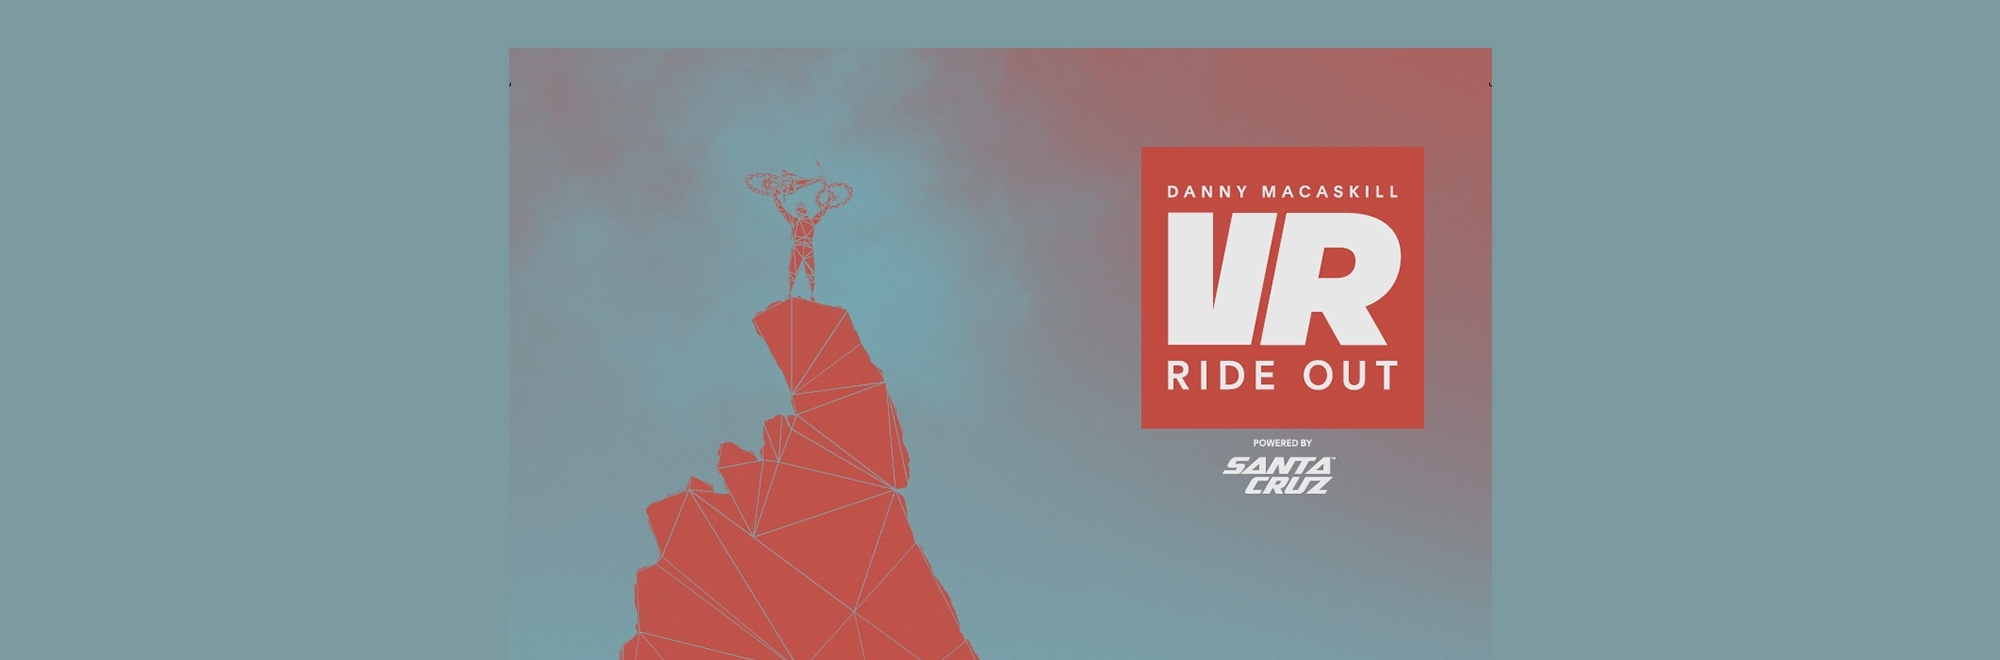 "Cut Media launches ""Danny MacAskill's VR Ride Out"" experience for Santa Cruz Bicycles"